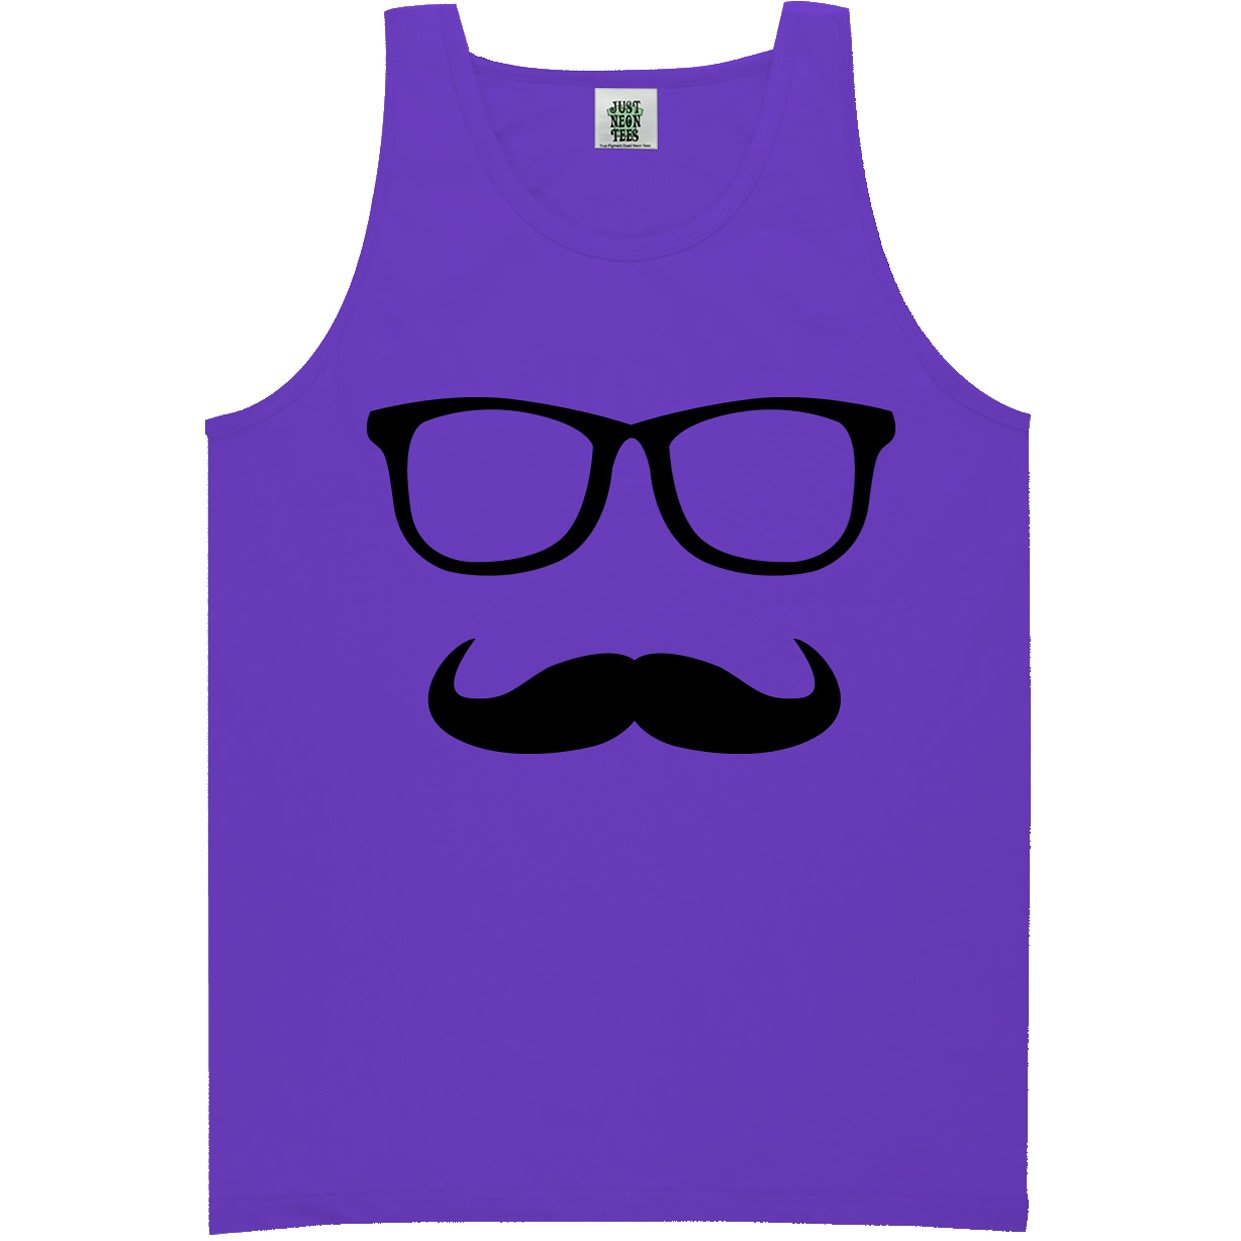 6 Bright Colors ZeroGravitee Youth Mustache and Glasses Bright Neon Tank Top